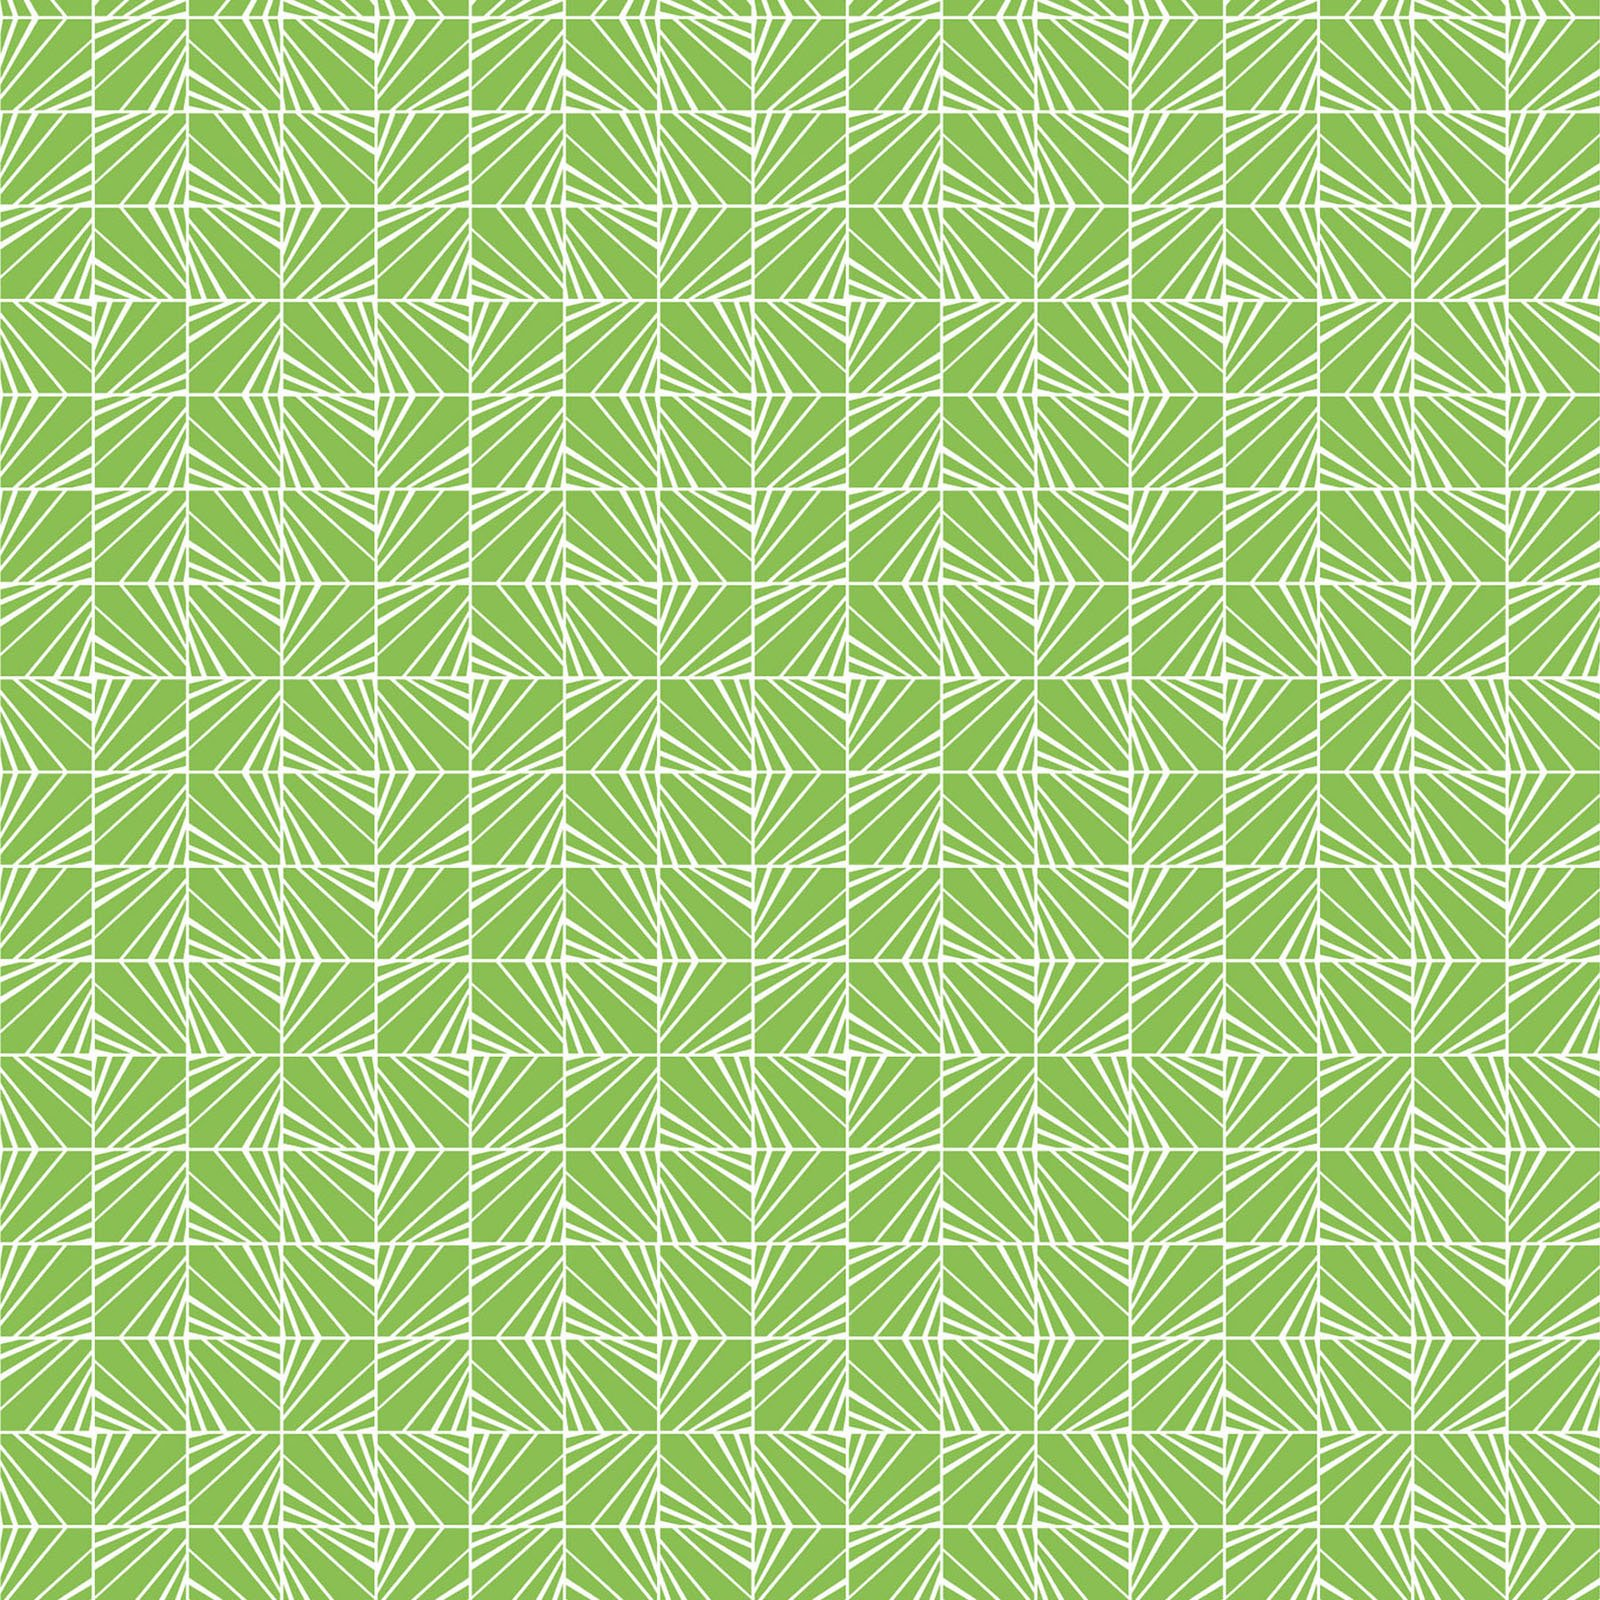 WHIM-4406 G - WHIMSY BY HANG TIGHT STUDIO FACETS GREEN